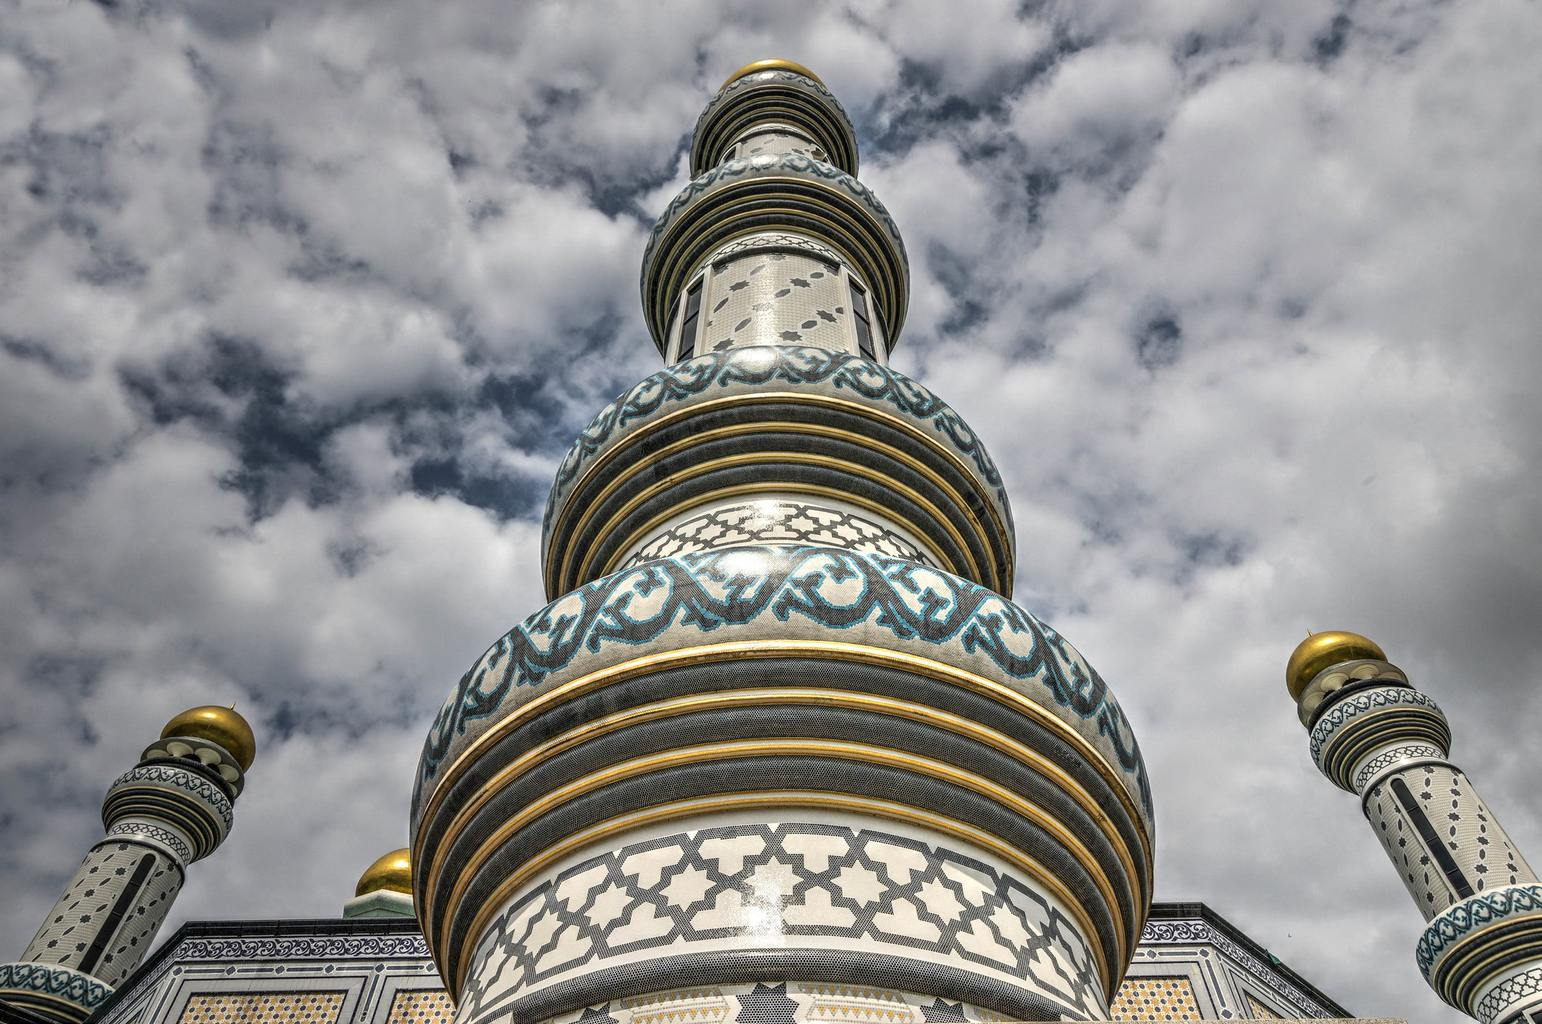 Gold domed minarets at Jame'Asr Hassanil Bolkiah Mosque